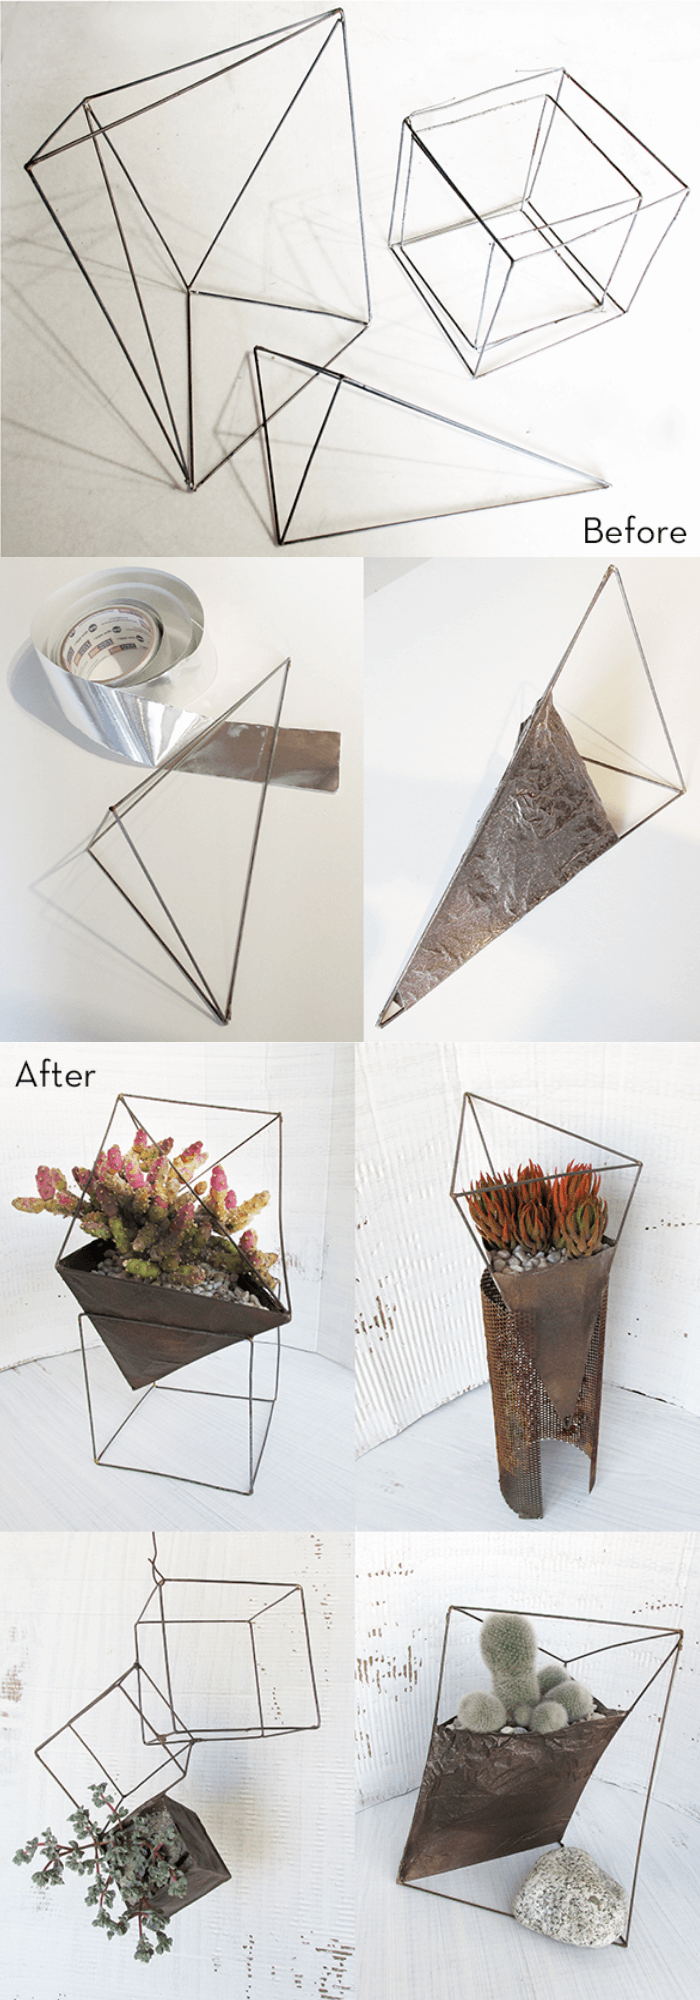 Turn Wire Sculptures into Geometric Succulent Planters